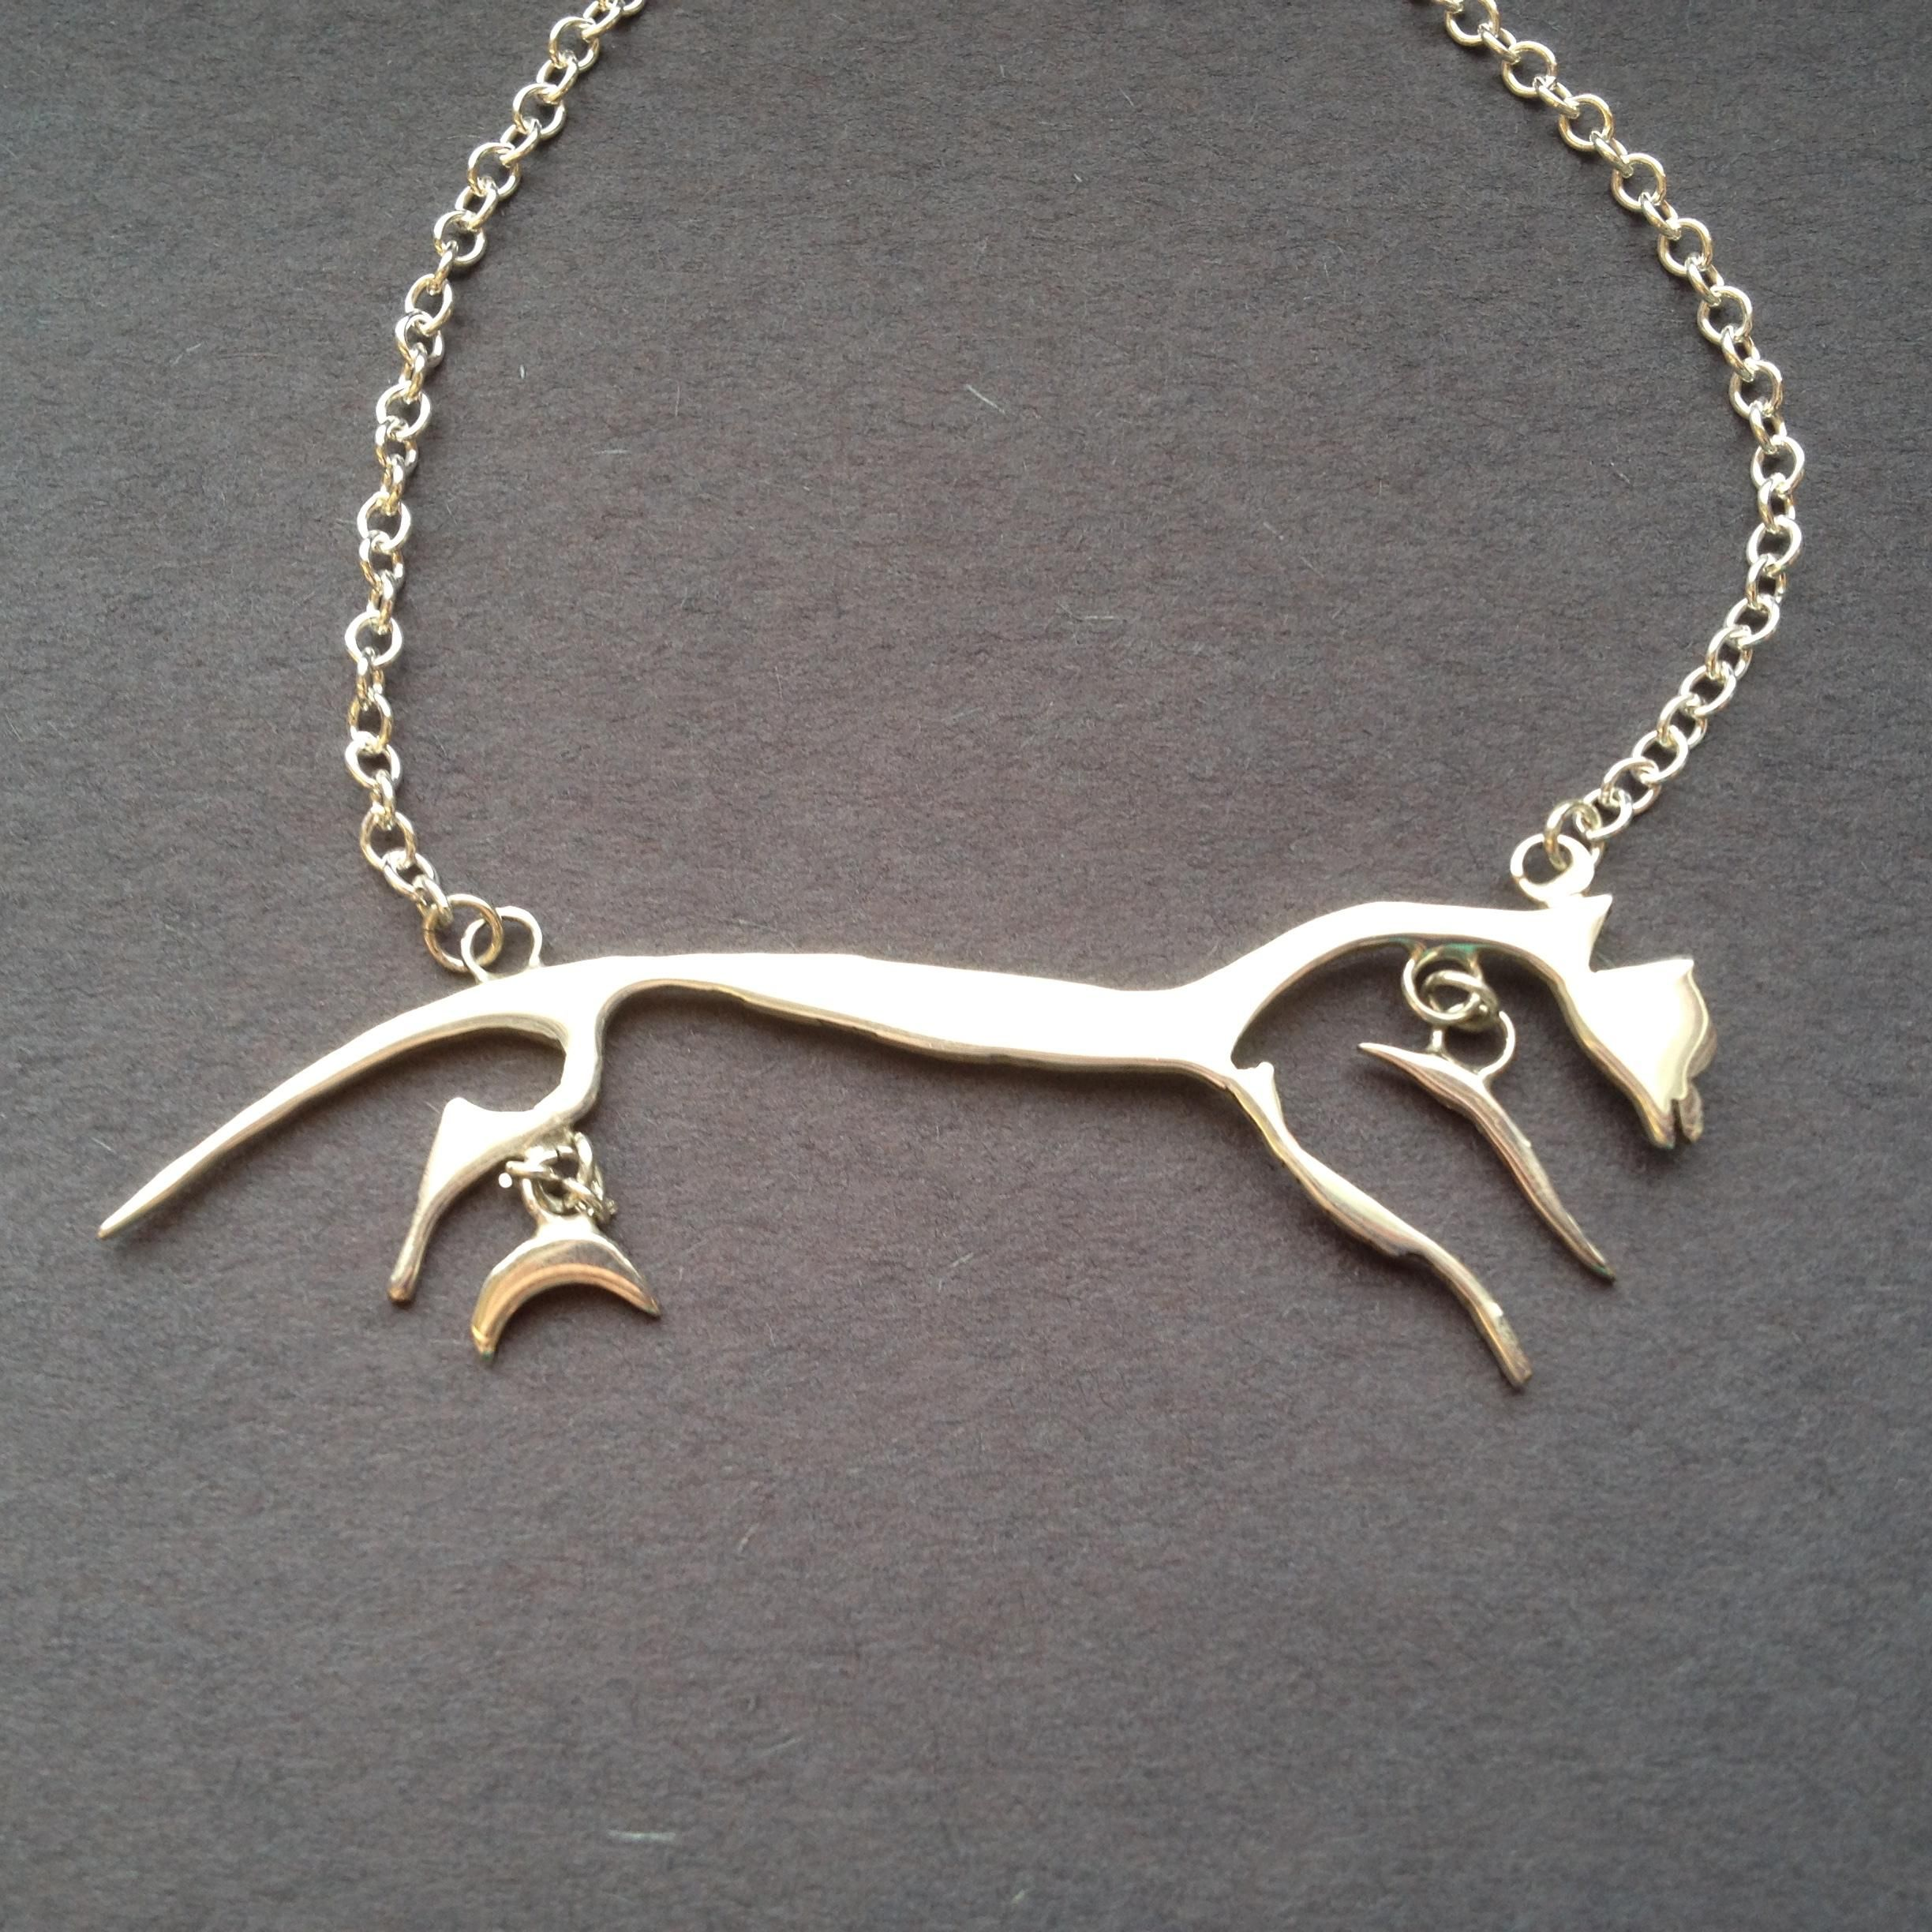 from and bit gold by dee equestrian stirrup rose loriece product rg horse necklace designs